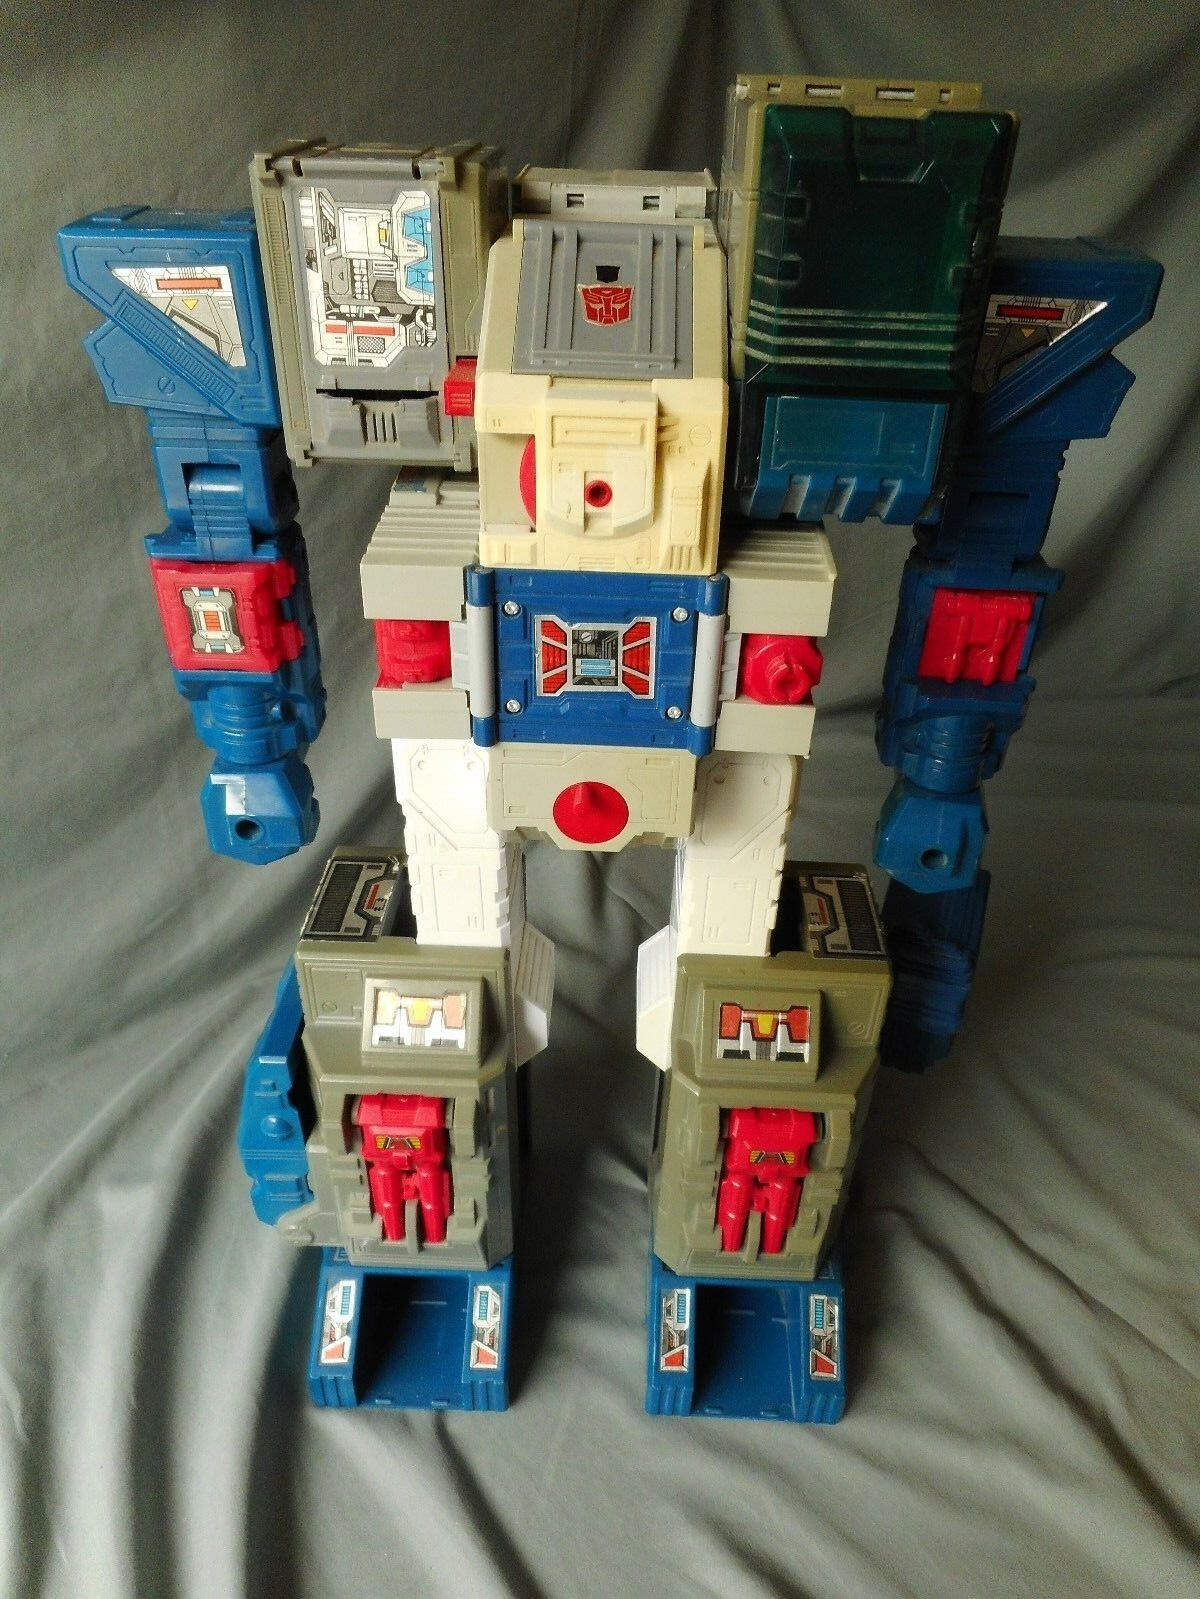 VINTAGE TRANSFORMERS G1 FORTRESS MAXIMUS MAXIMUS MAXIMUS BODY ONLY 1987 HASBRO FORT MAX 306999